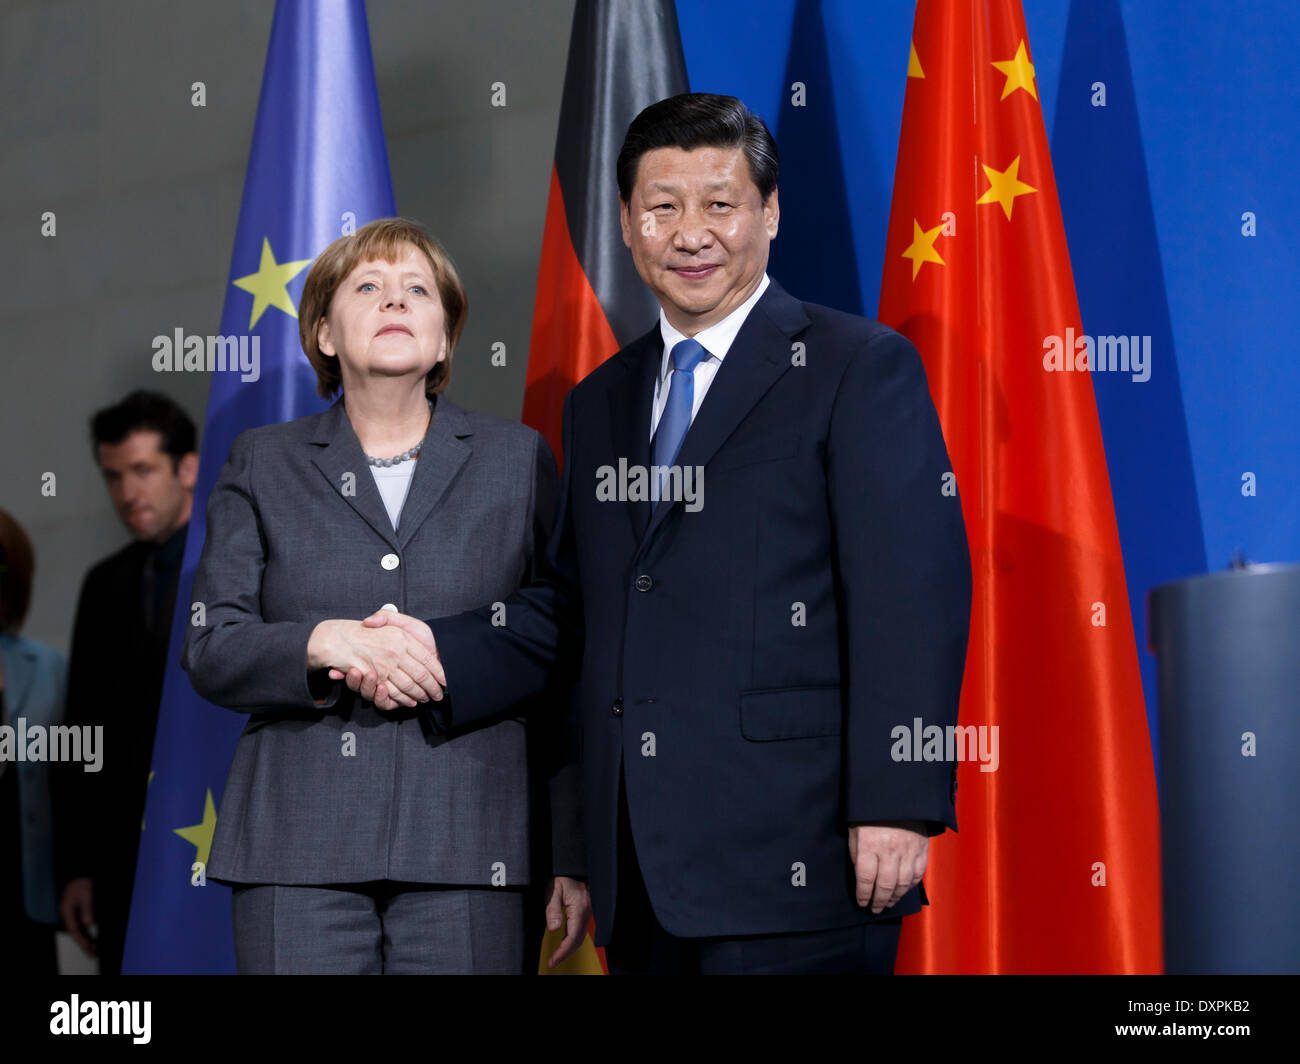 Berlin, Germany. March, 28th, 2014. Common press meeting of Chinese president Xi Jinping by German Chancellor Angela Merkel in the chancellor's office in Berlin. / Picture: Xi Jinping,  president of China, and Angela Merkle, German Chancellor. Credit:  Reynaldo Chaib Paganelli/Alamy Live News - Stock Image